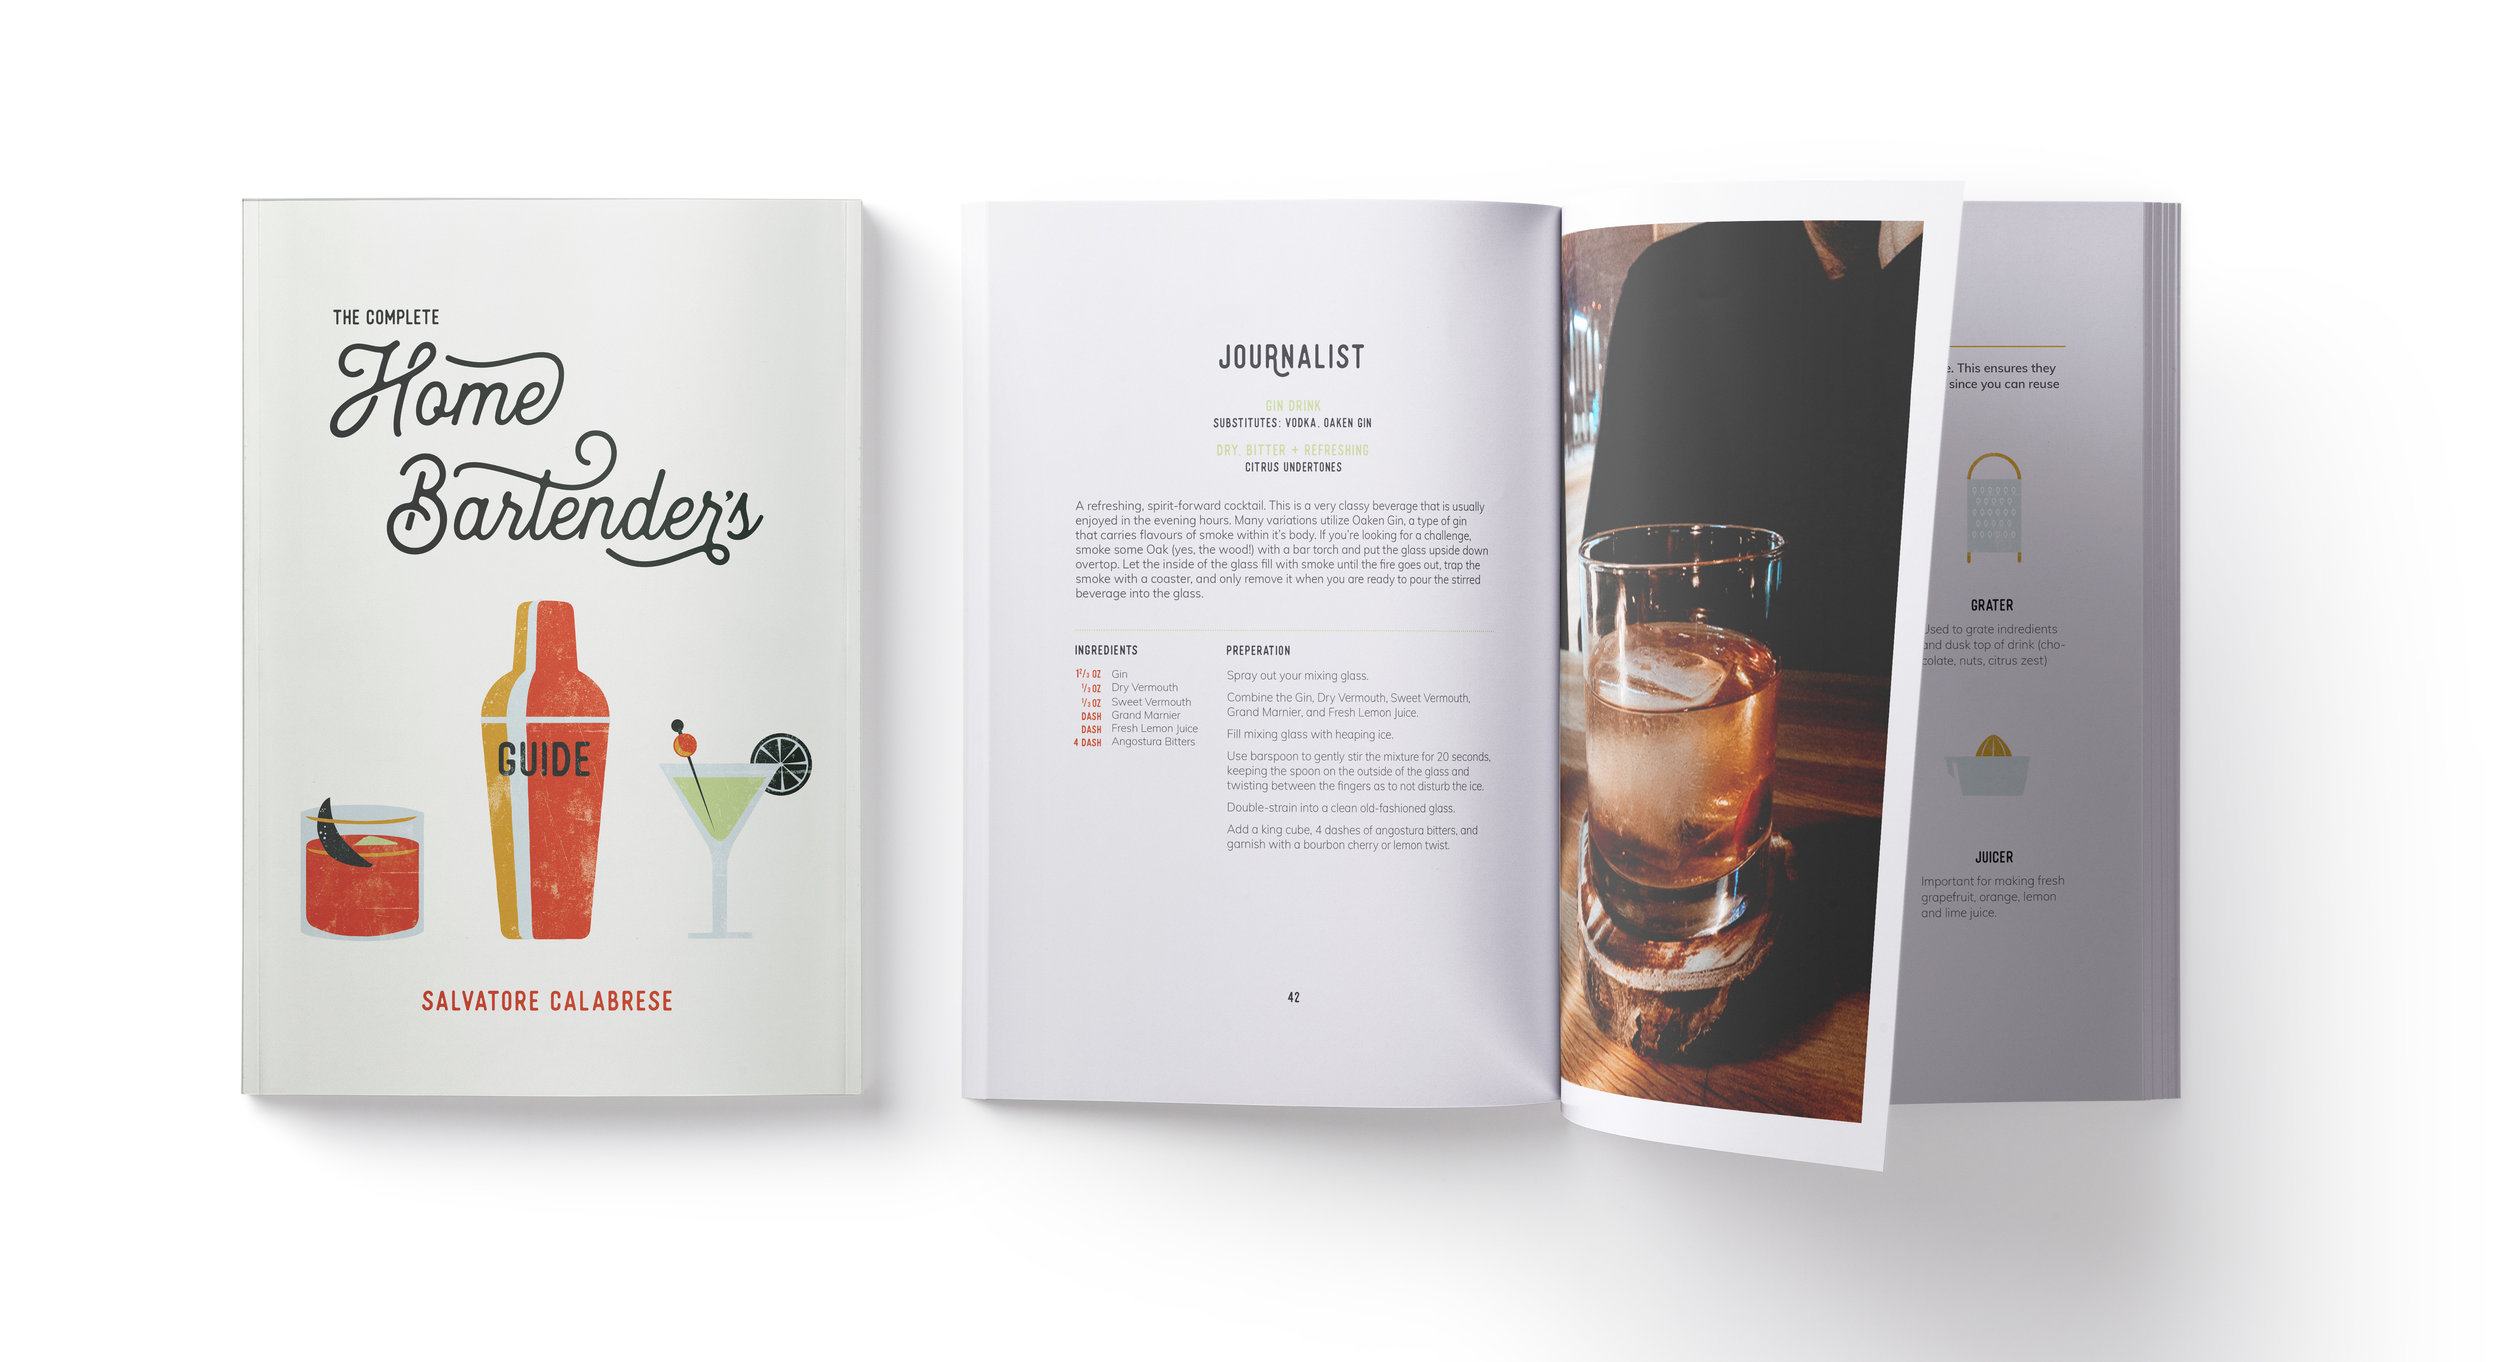 Book Redesign - The Complete Home Bartender's Guide